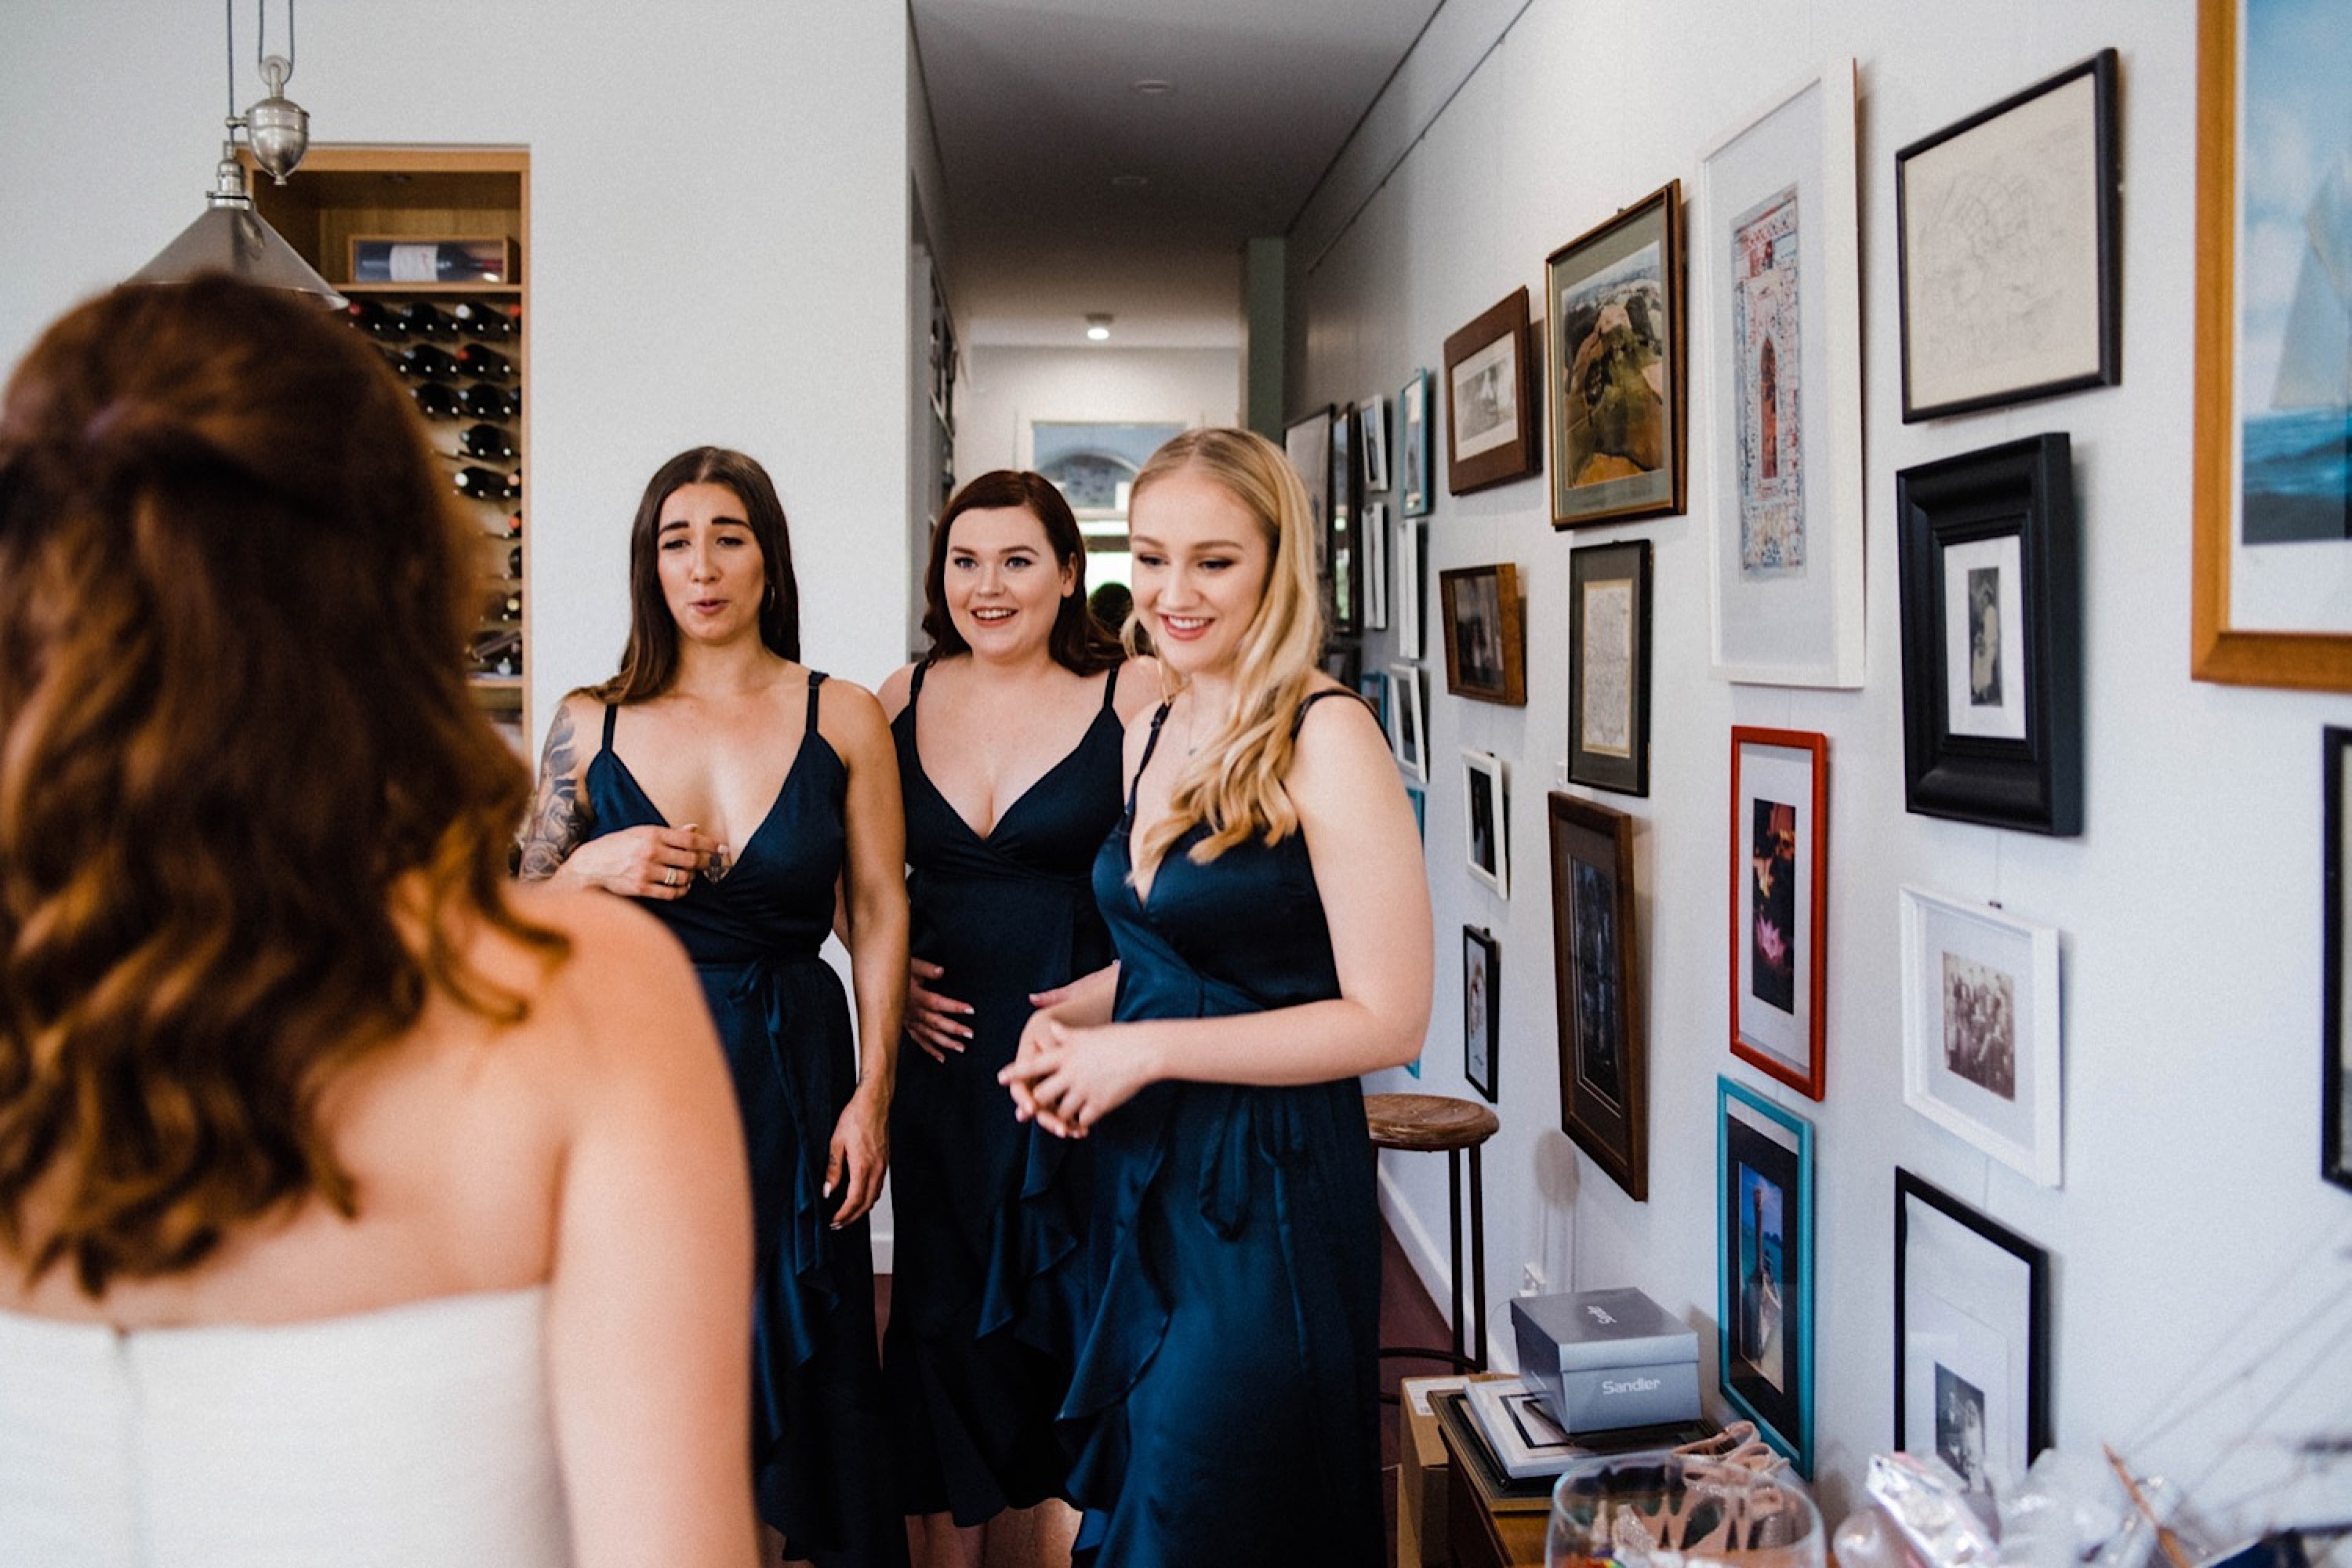 Documentary Wedding Photography of the bridesmaid's, who are wearing blue, reacting to seeing the bride in her dress for the first time.